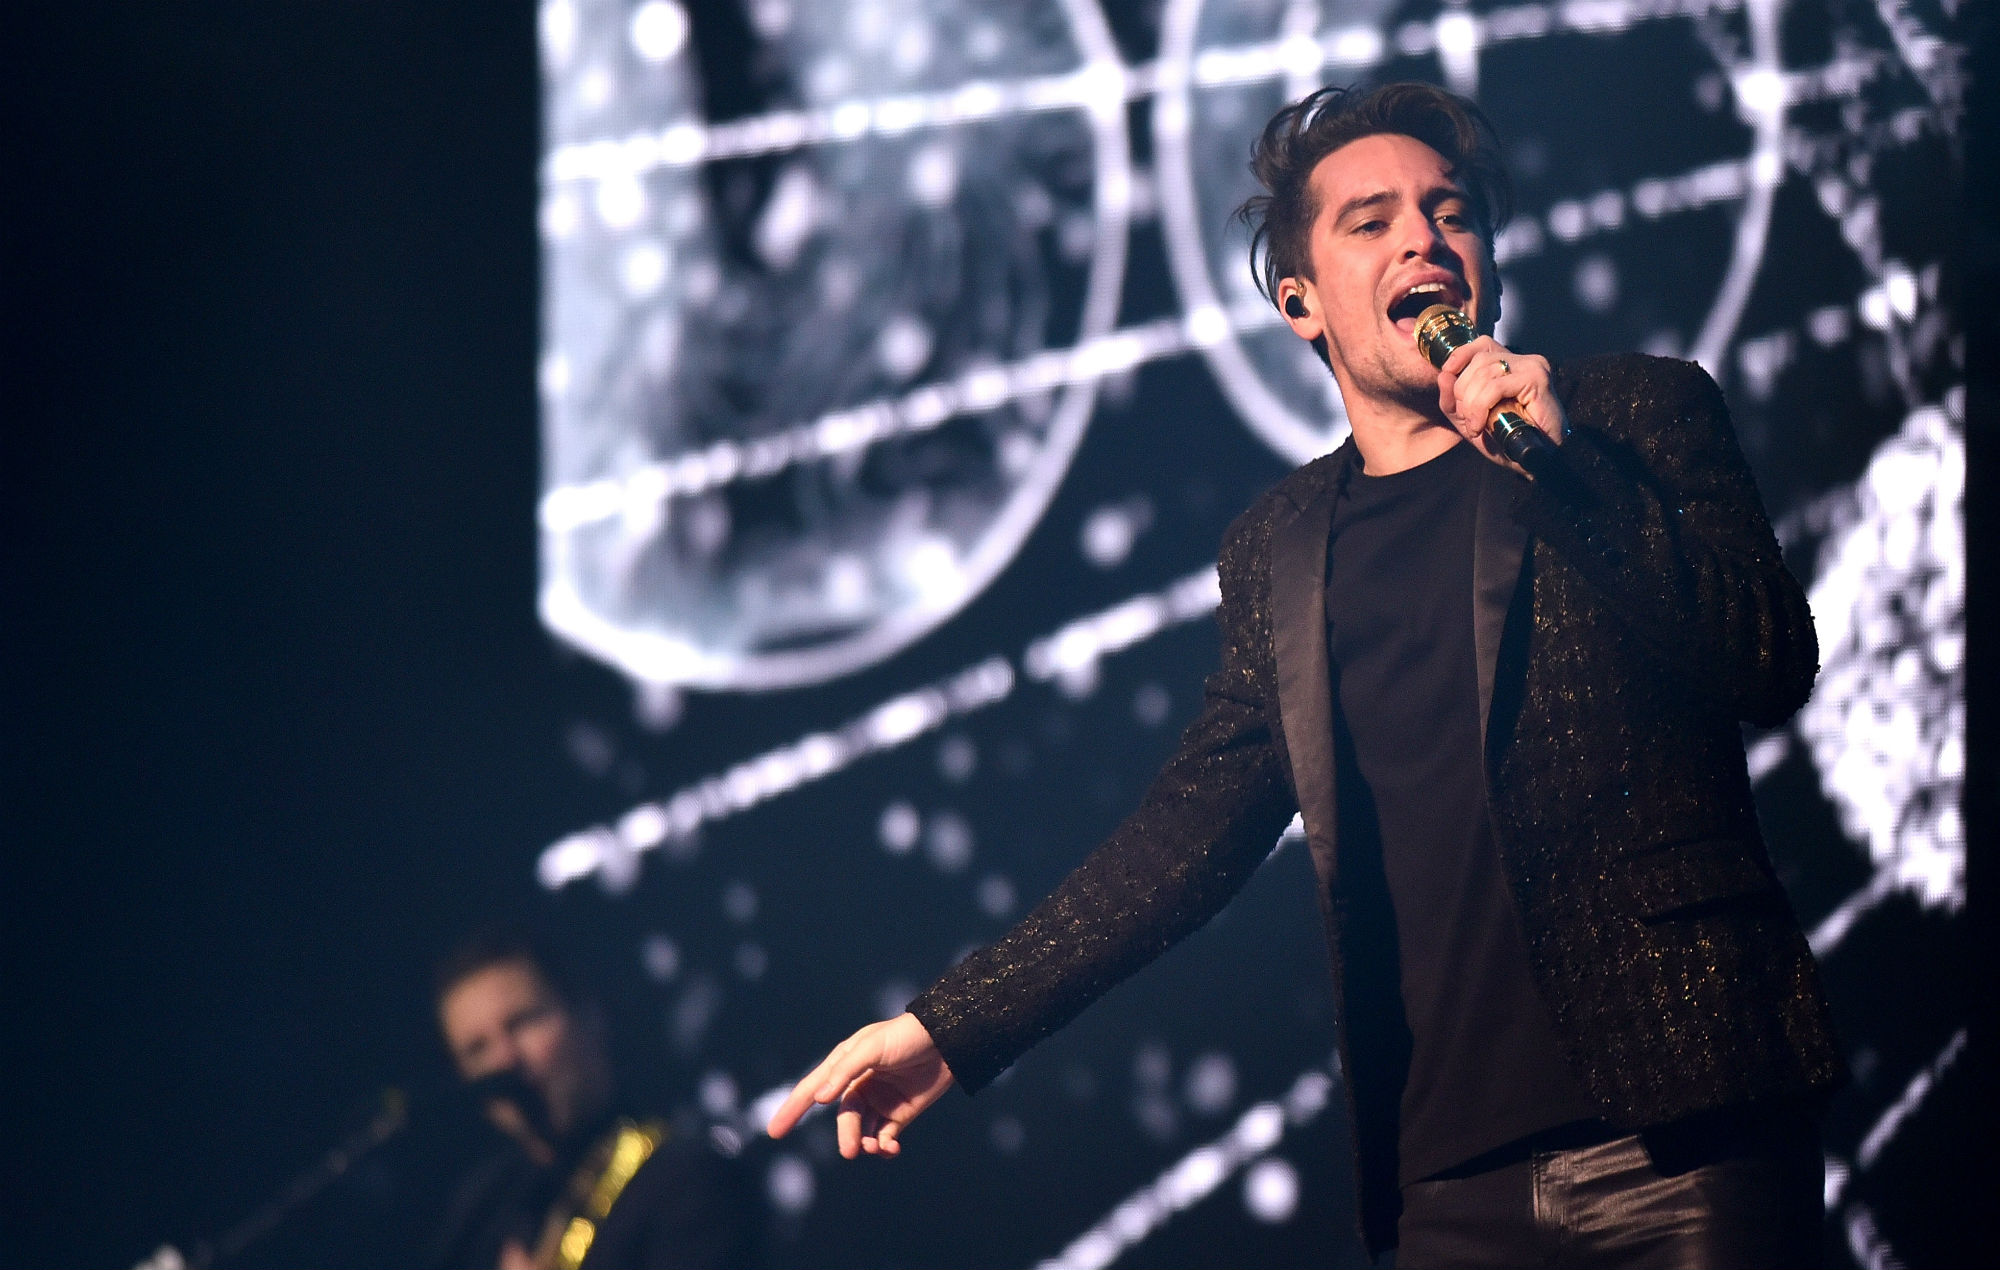 Panic at the disco album release date in Melbourne